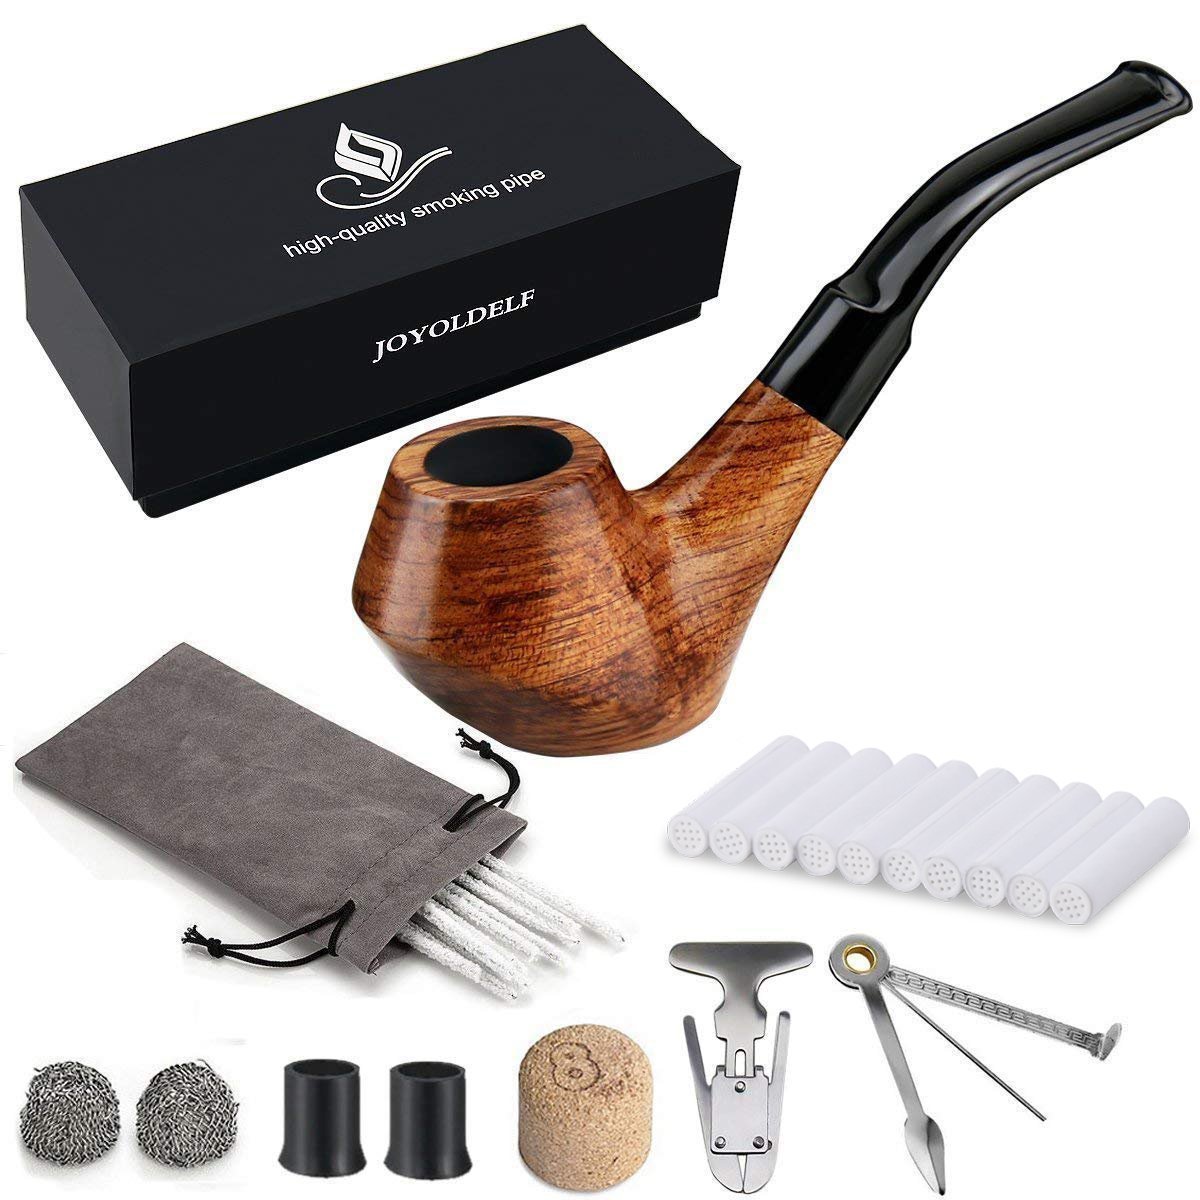 Joyoldelf Creative Wooden Smoking Pipe Set with Gift Box, Rosewood Pipe with Pipe Cleaners and Other Smoking Accessories XX027